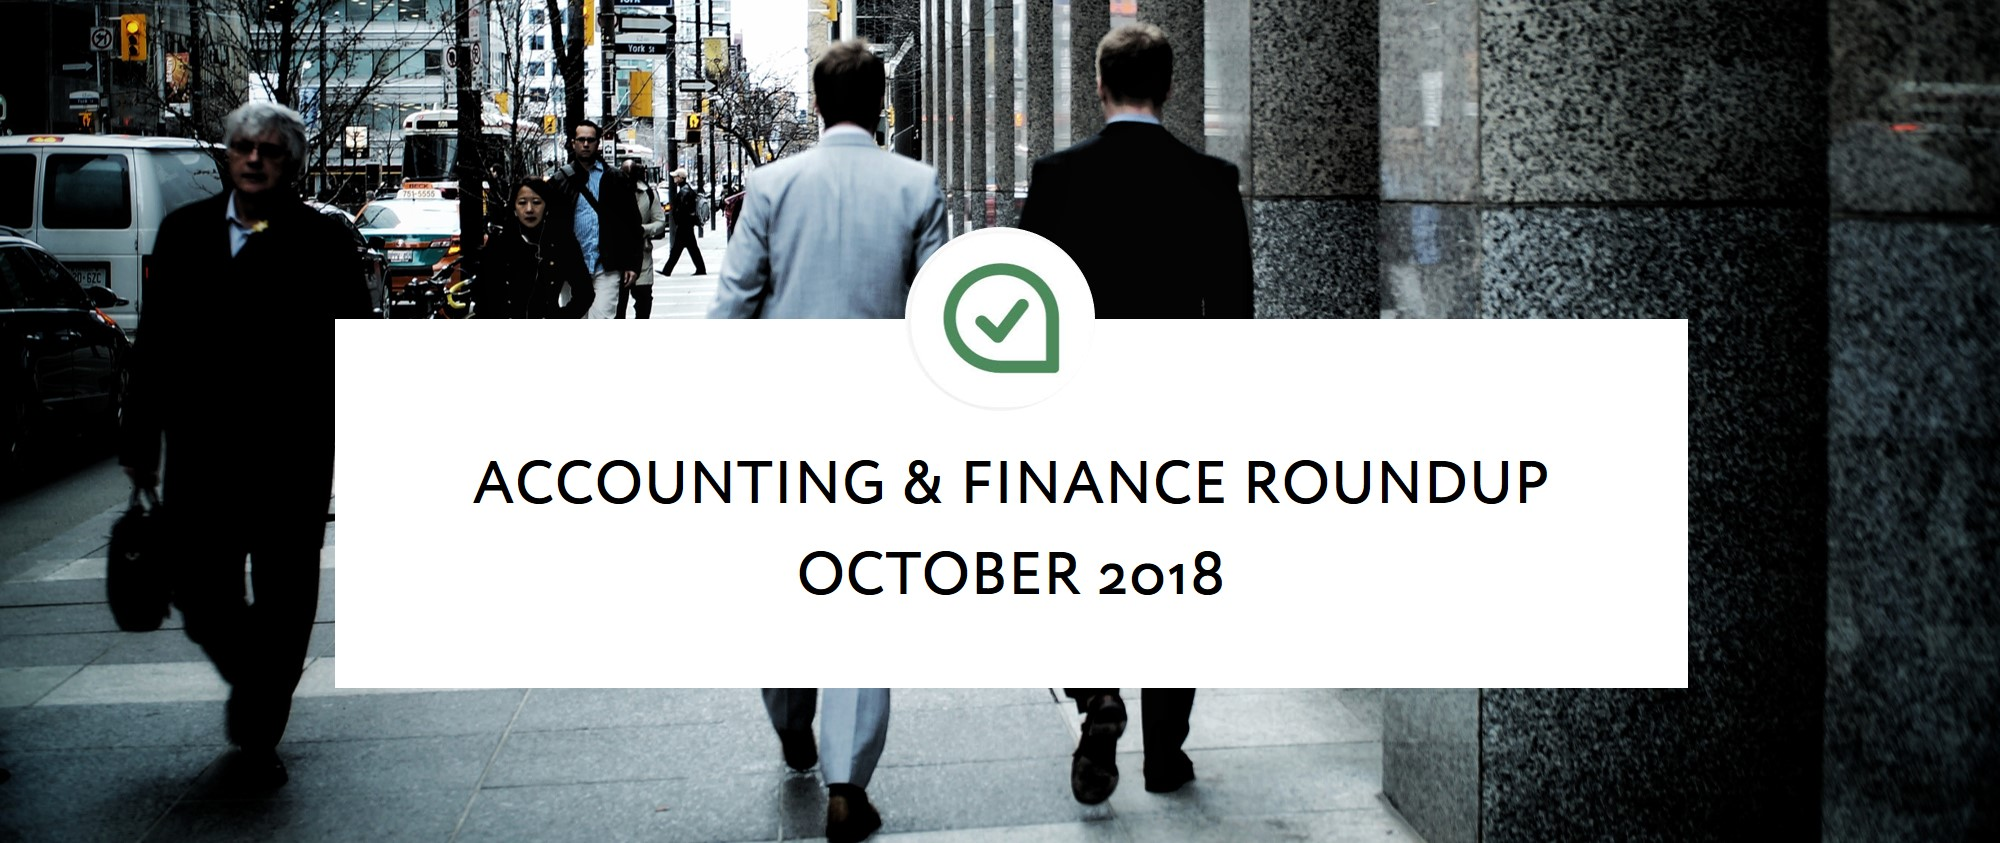 Accounting & Finance Roundup:  What did you miss in October 2018?